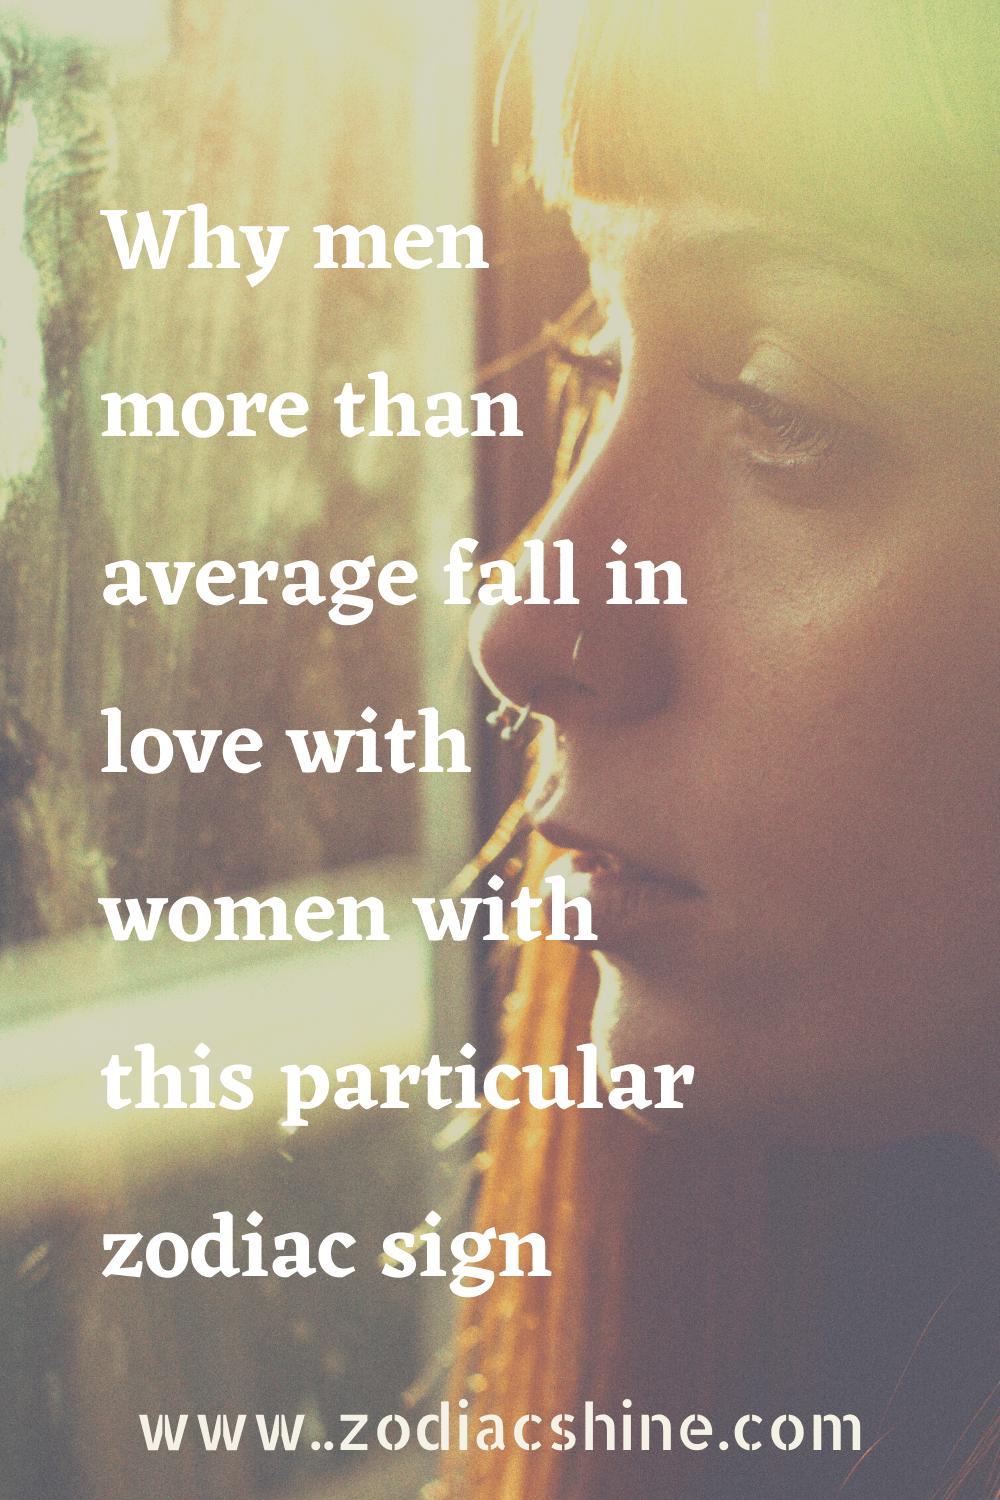 Why men more than average fall in love with women with this particular zodiac sign